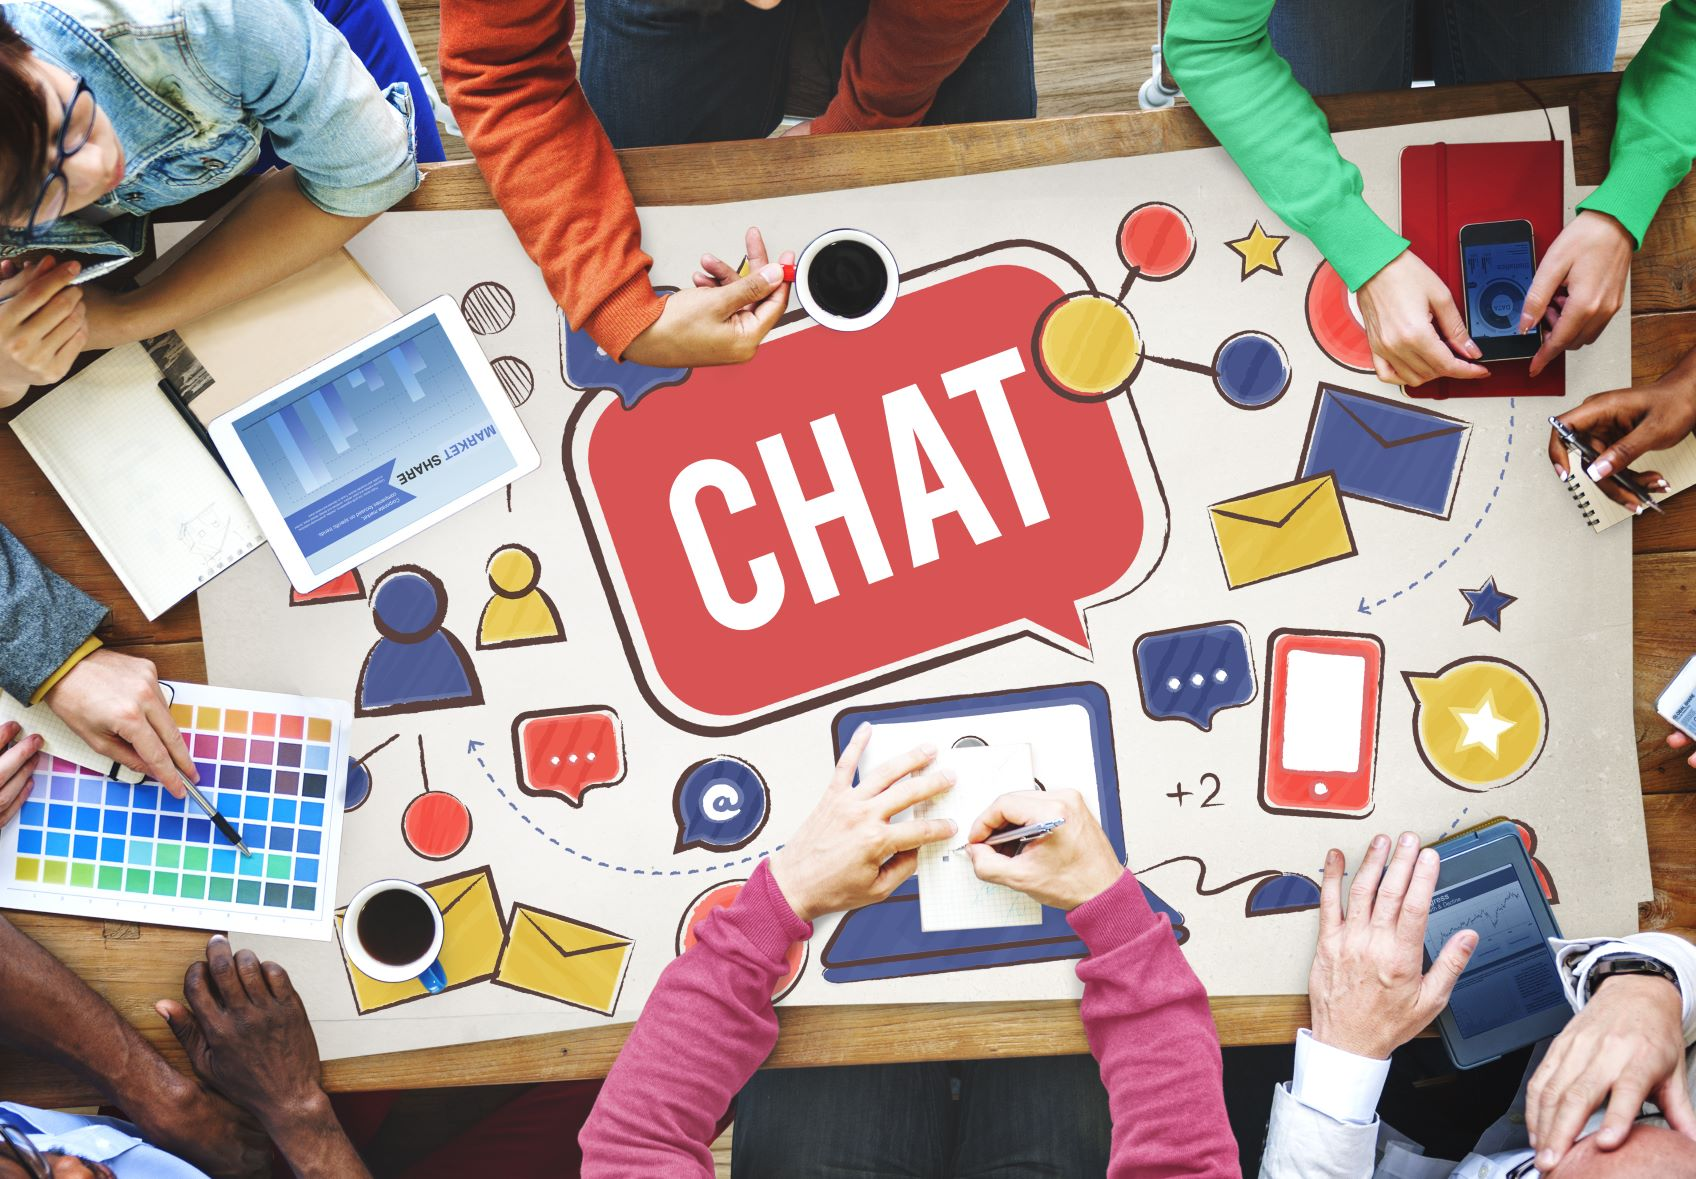 Using chat software to improve customer experience